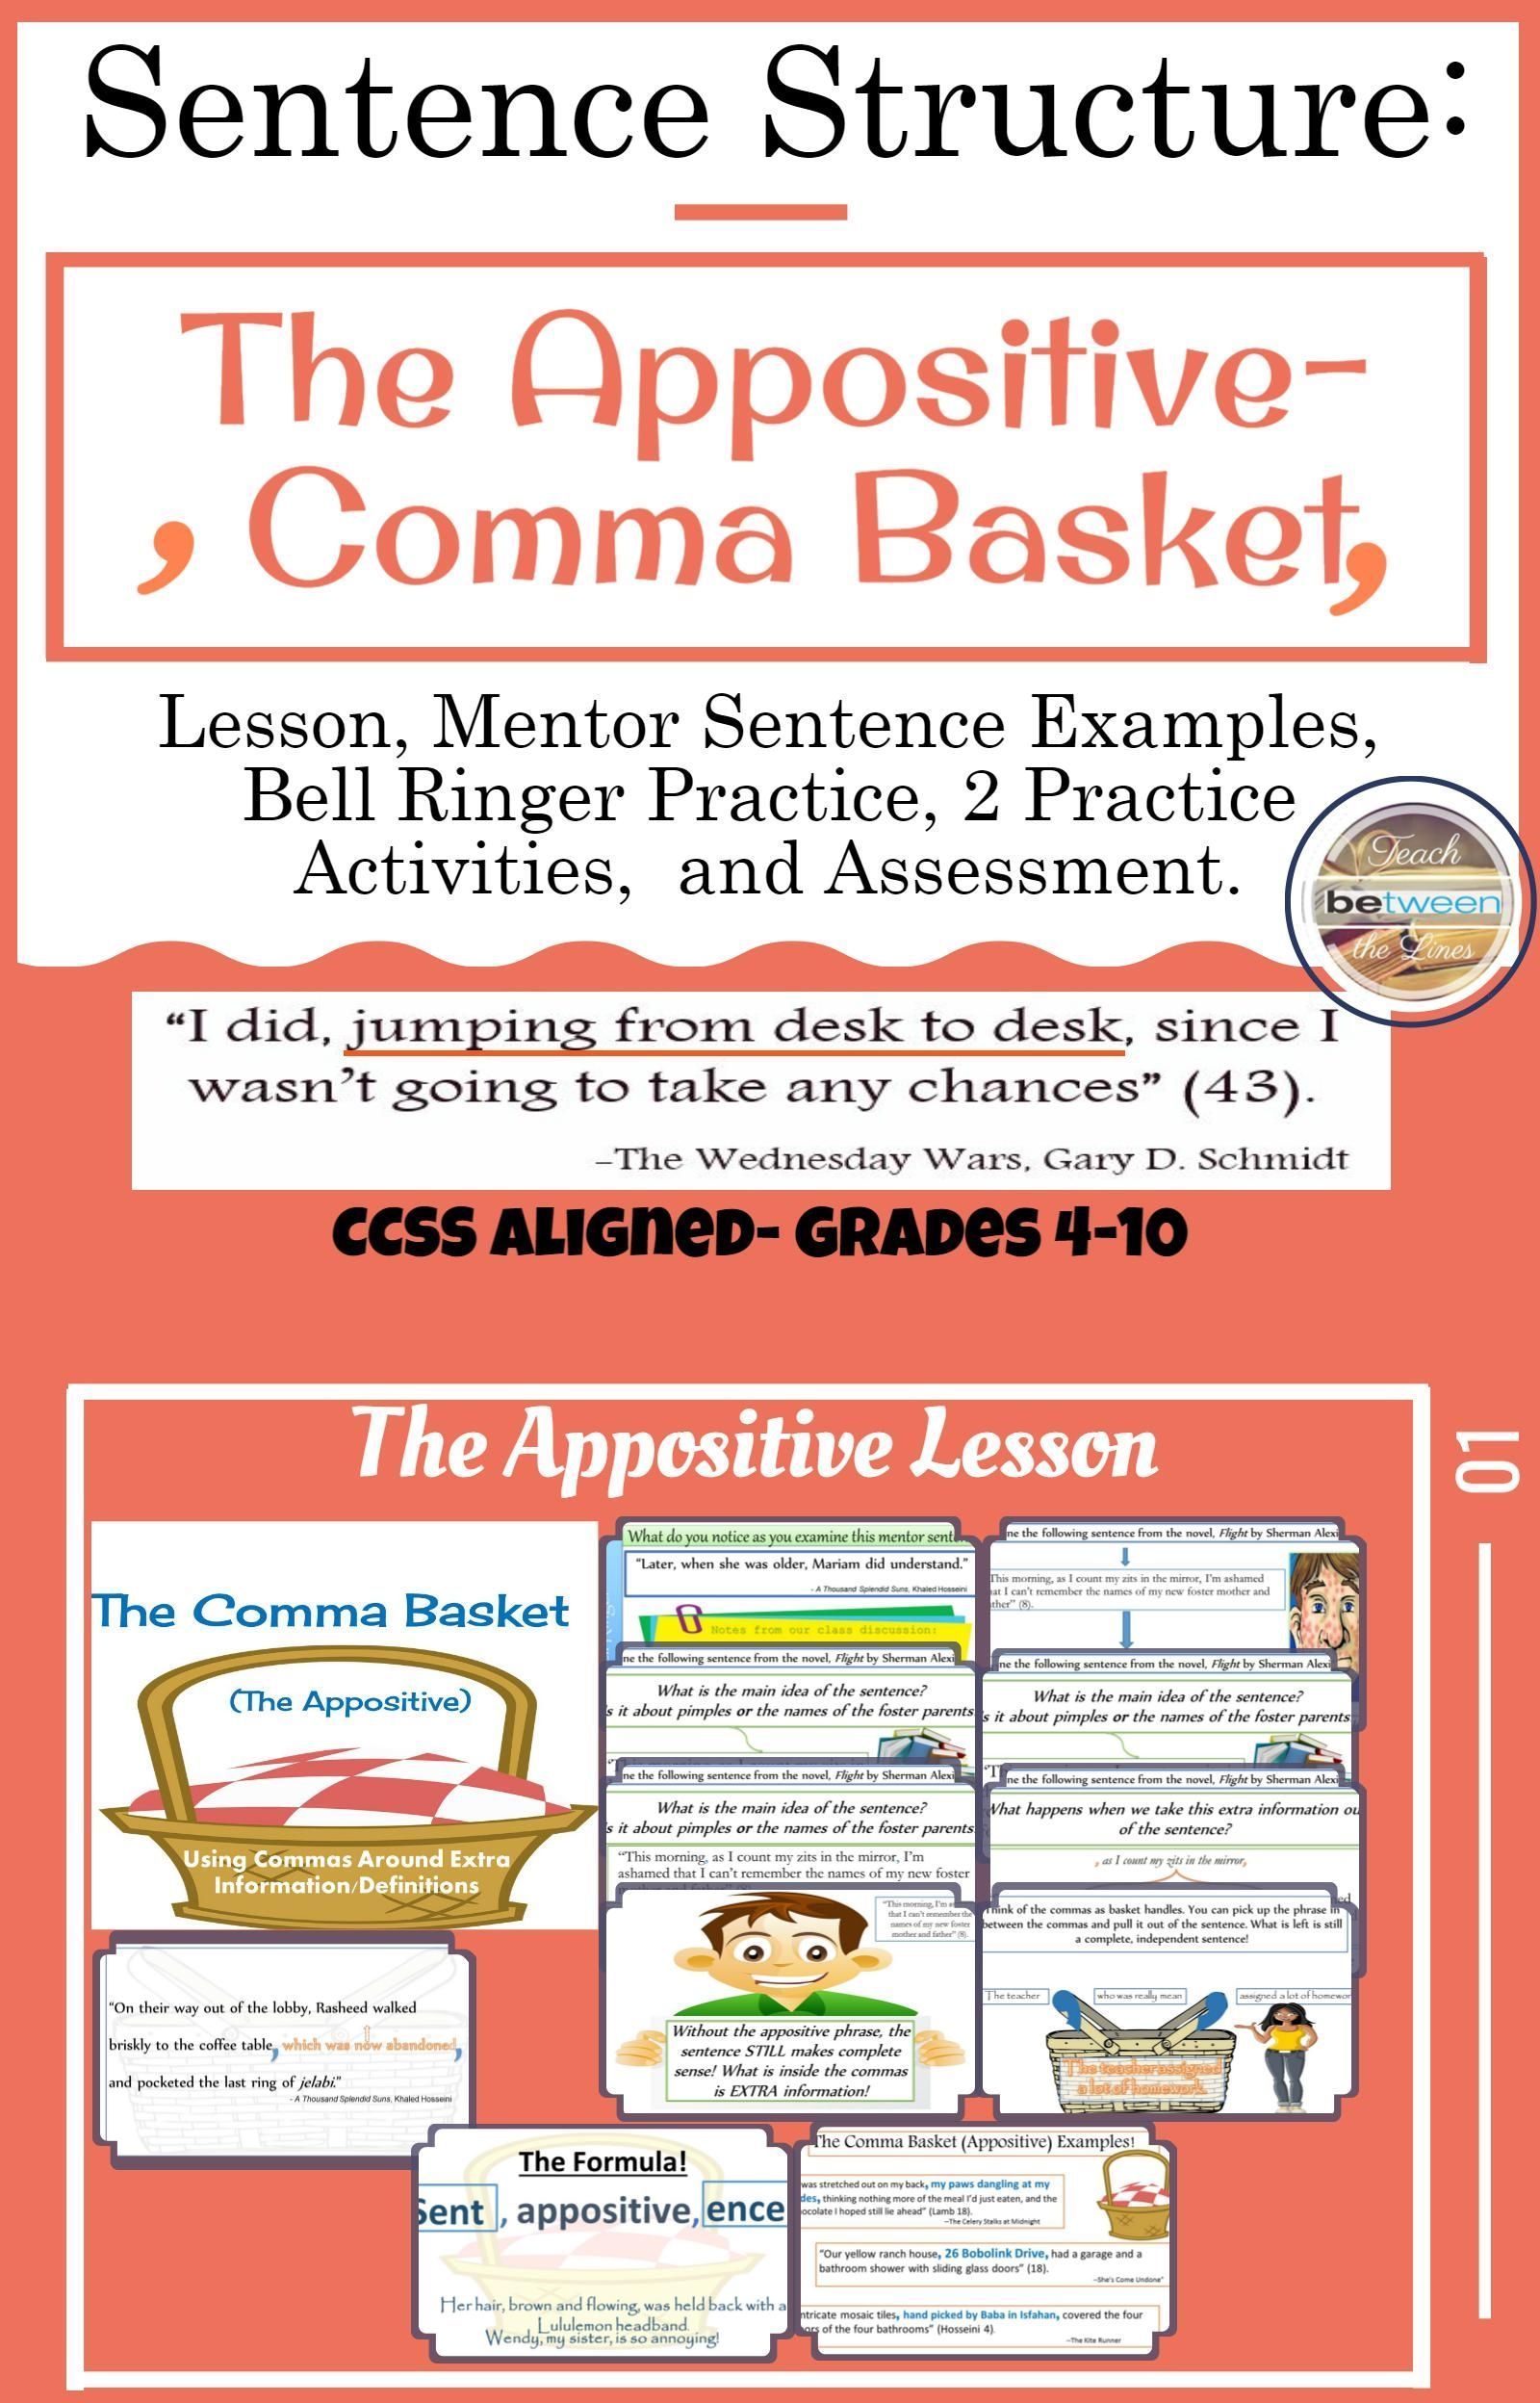 Sentence Structure With The Appositive The Comma Basket